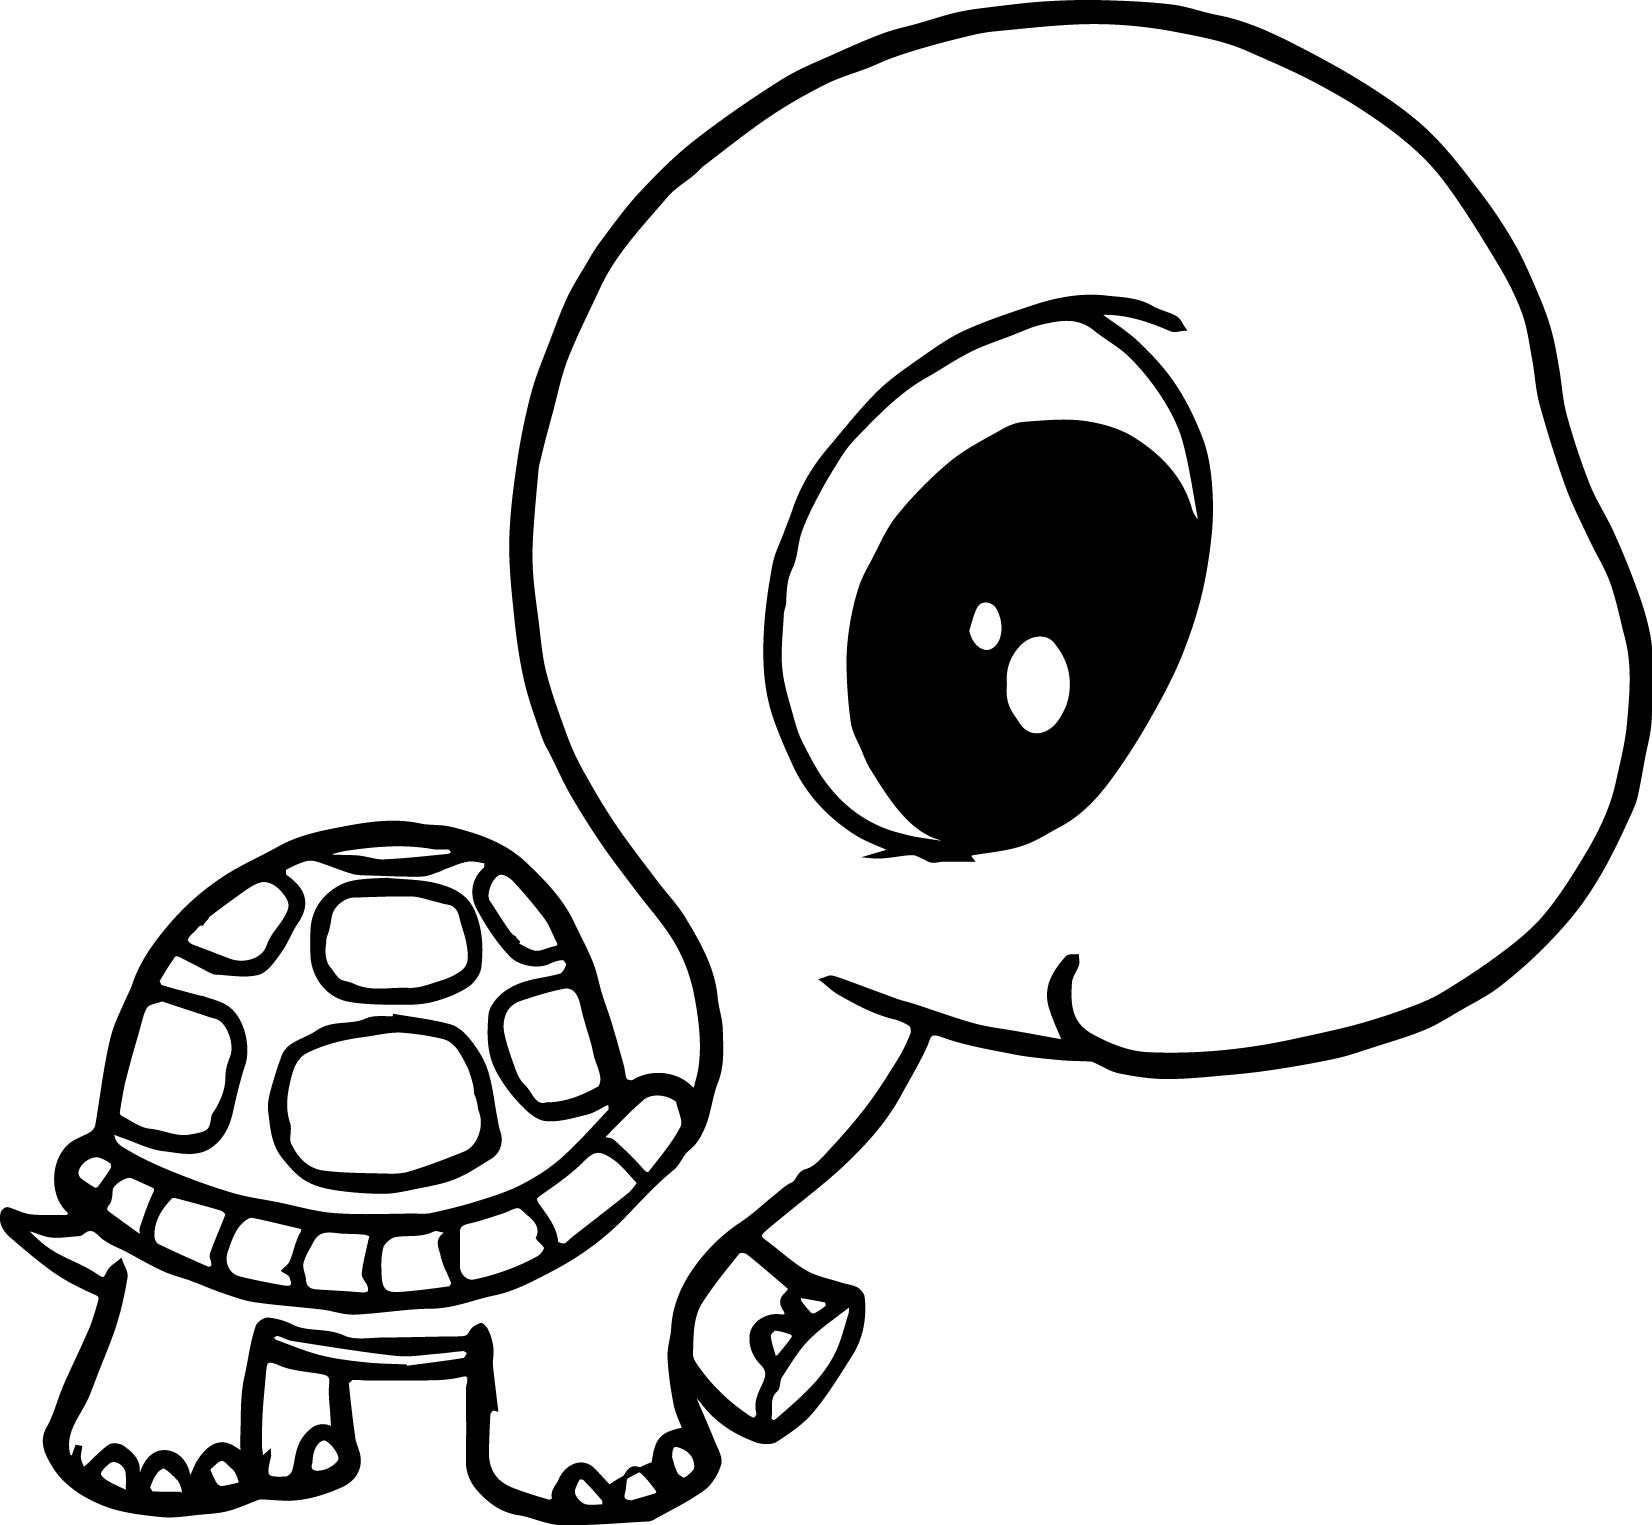 1652x1525 Fresh Tortoise Page To Color Gallery Printable Coloring Sheet